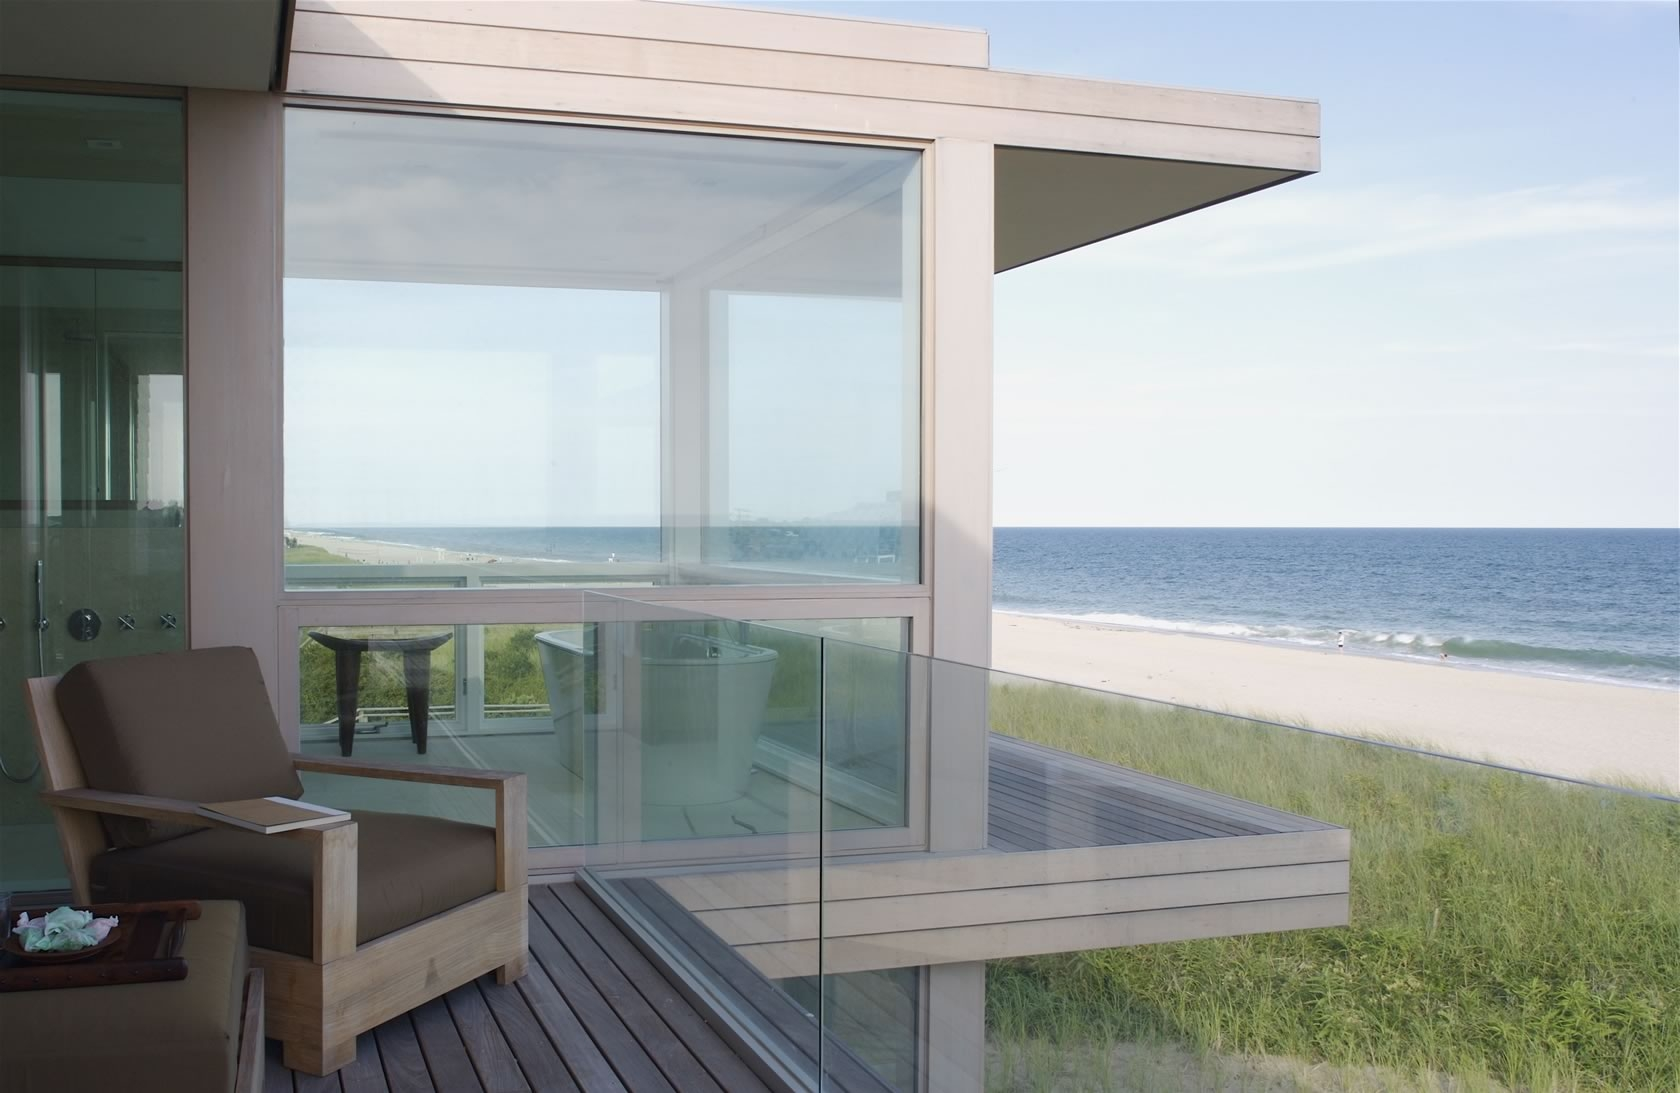 Bridgehampton, NY Modern House deck overlooking the ocean